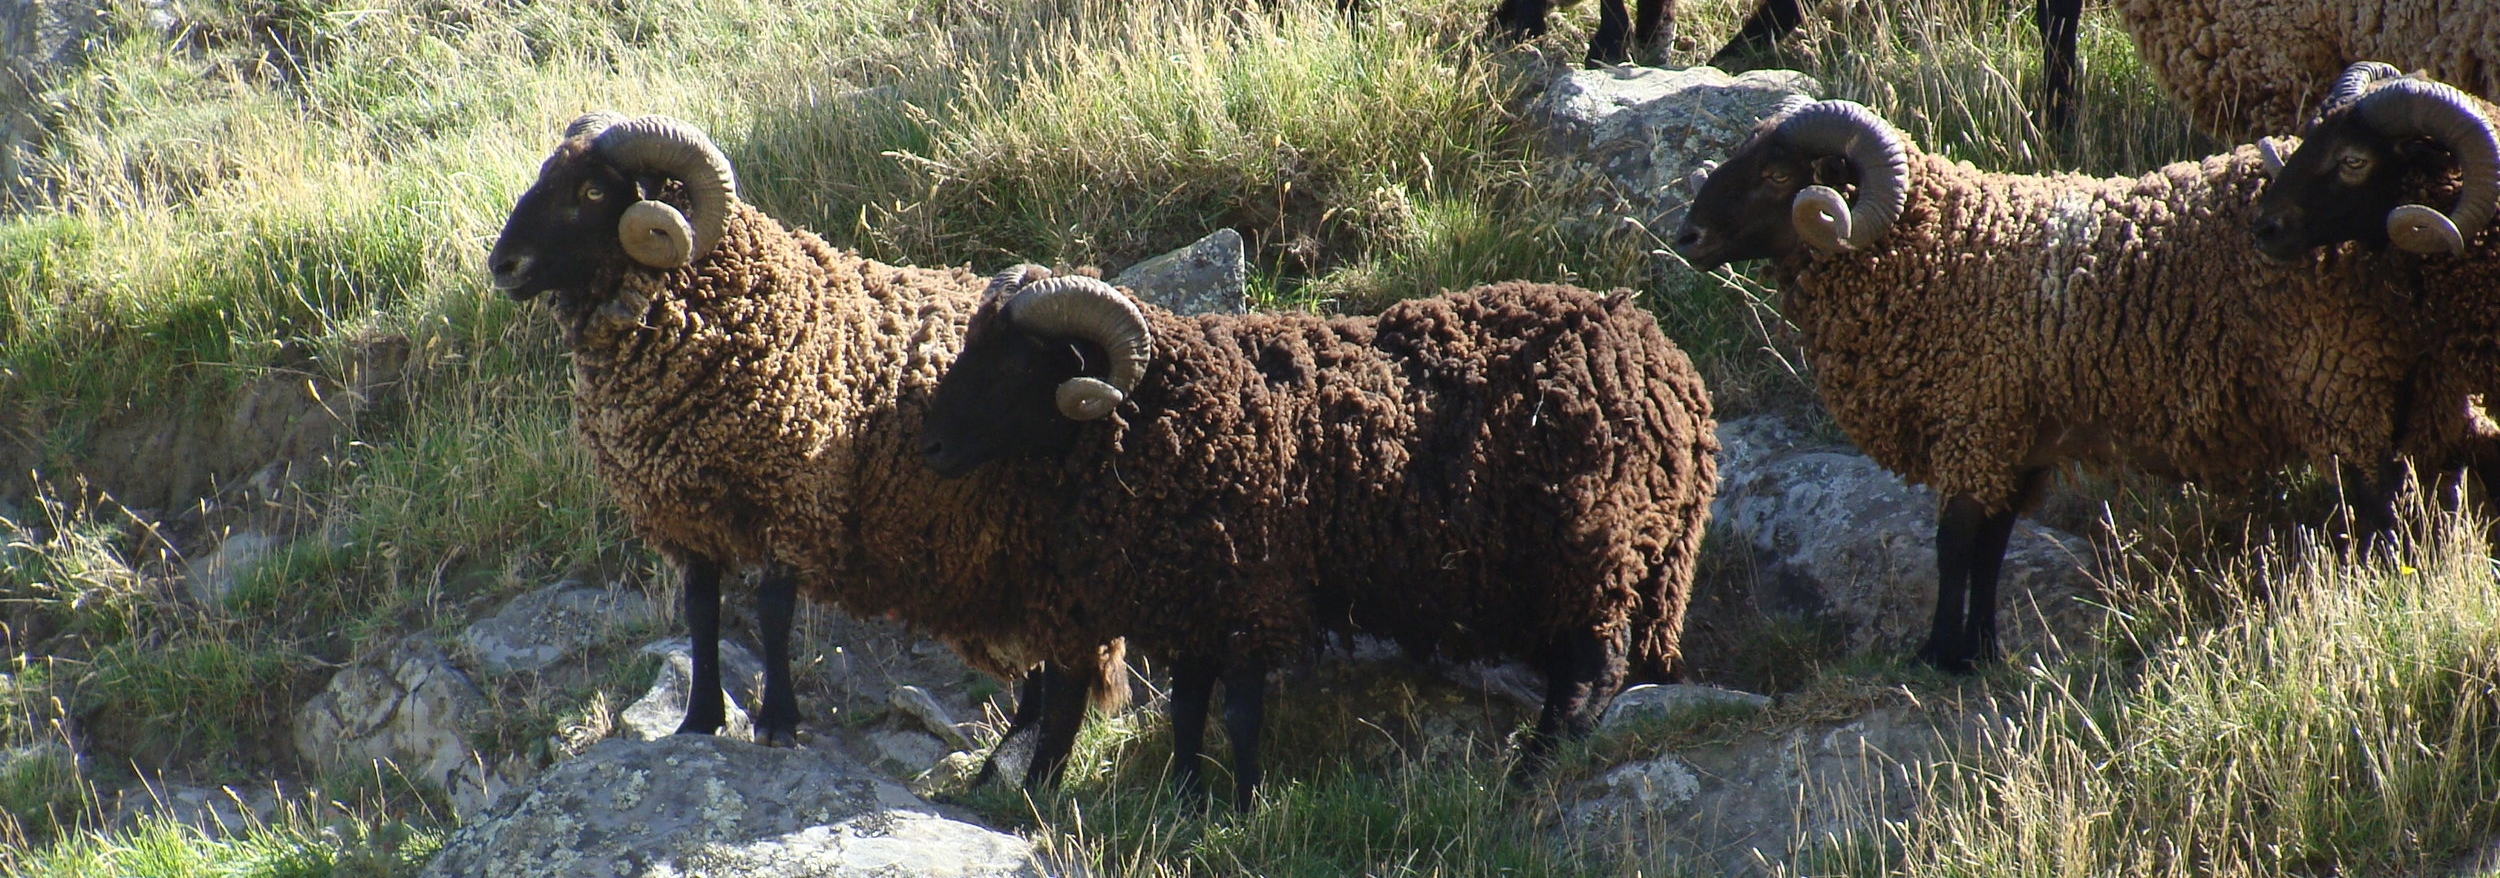 Pihepe, naturally nurtured. Pitt Island Wild Sheep. Organically grown and ethically treated.